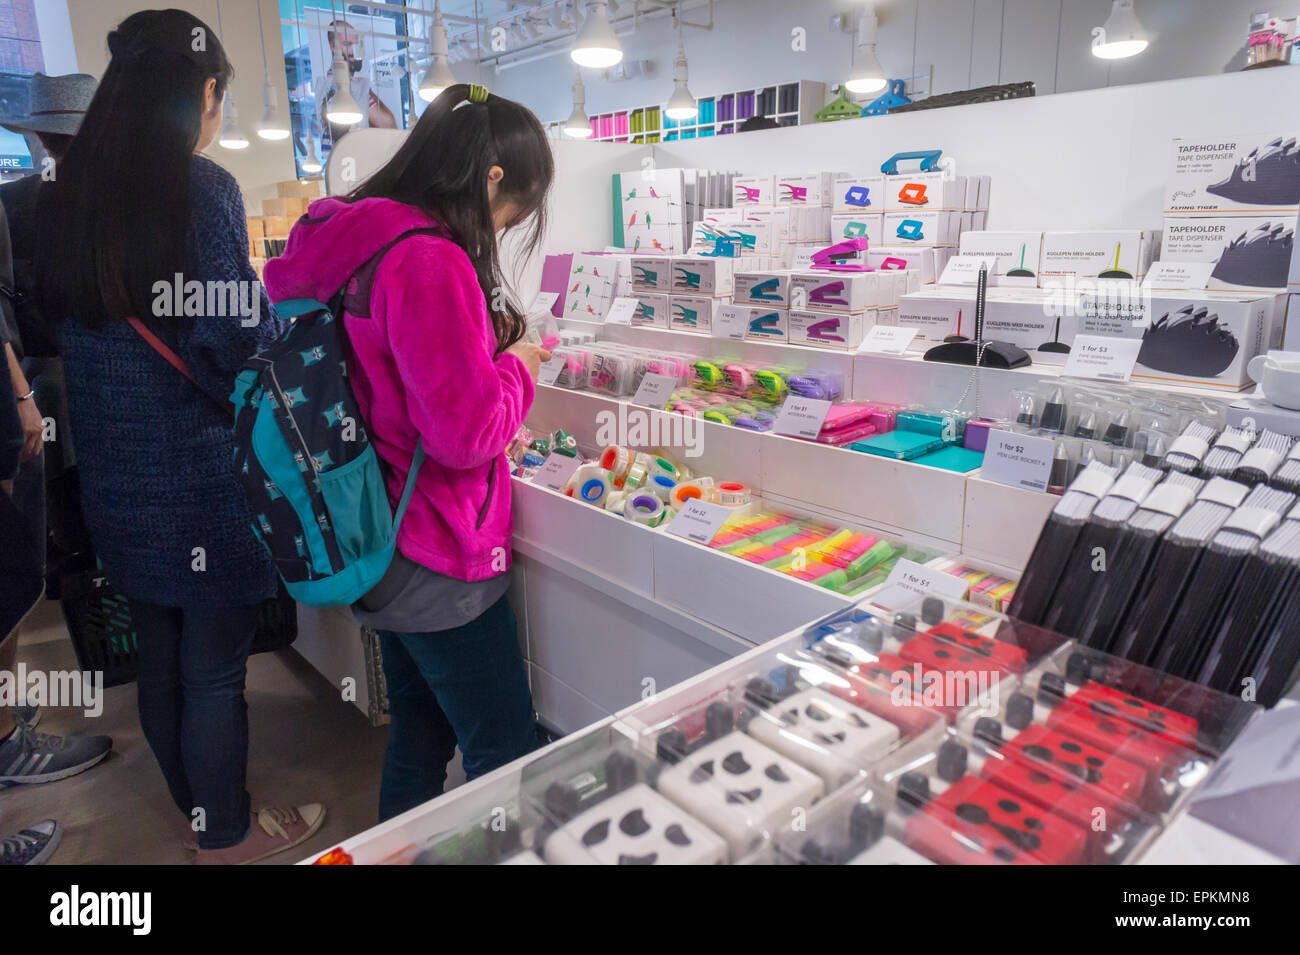 Shoppers in the design store Flying Tiger Copenhagen on opening day in the Flatiron District in New York on Saturday, - Stock Image